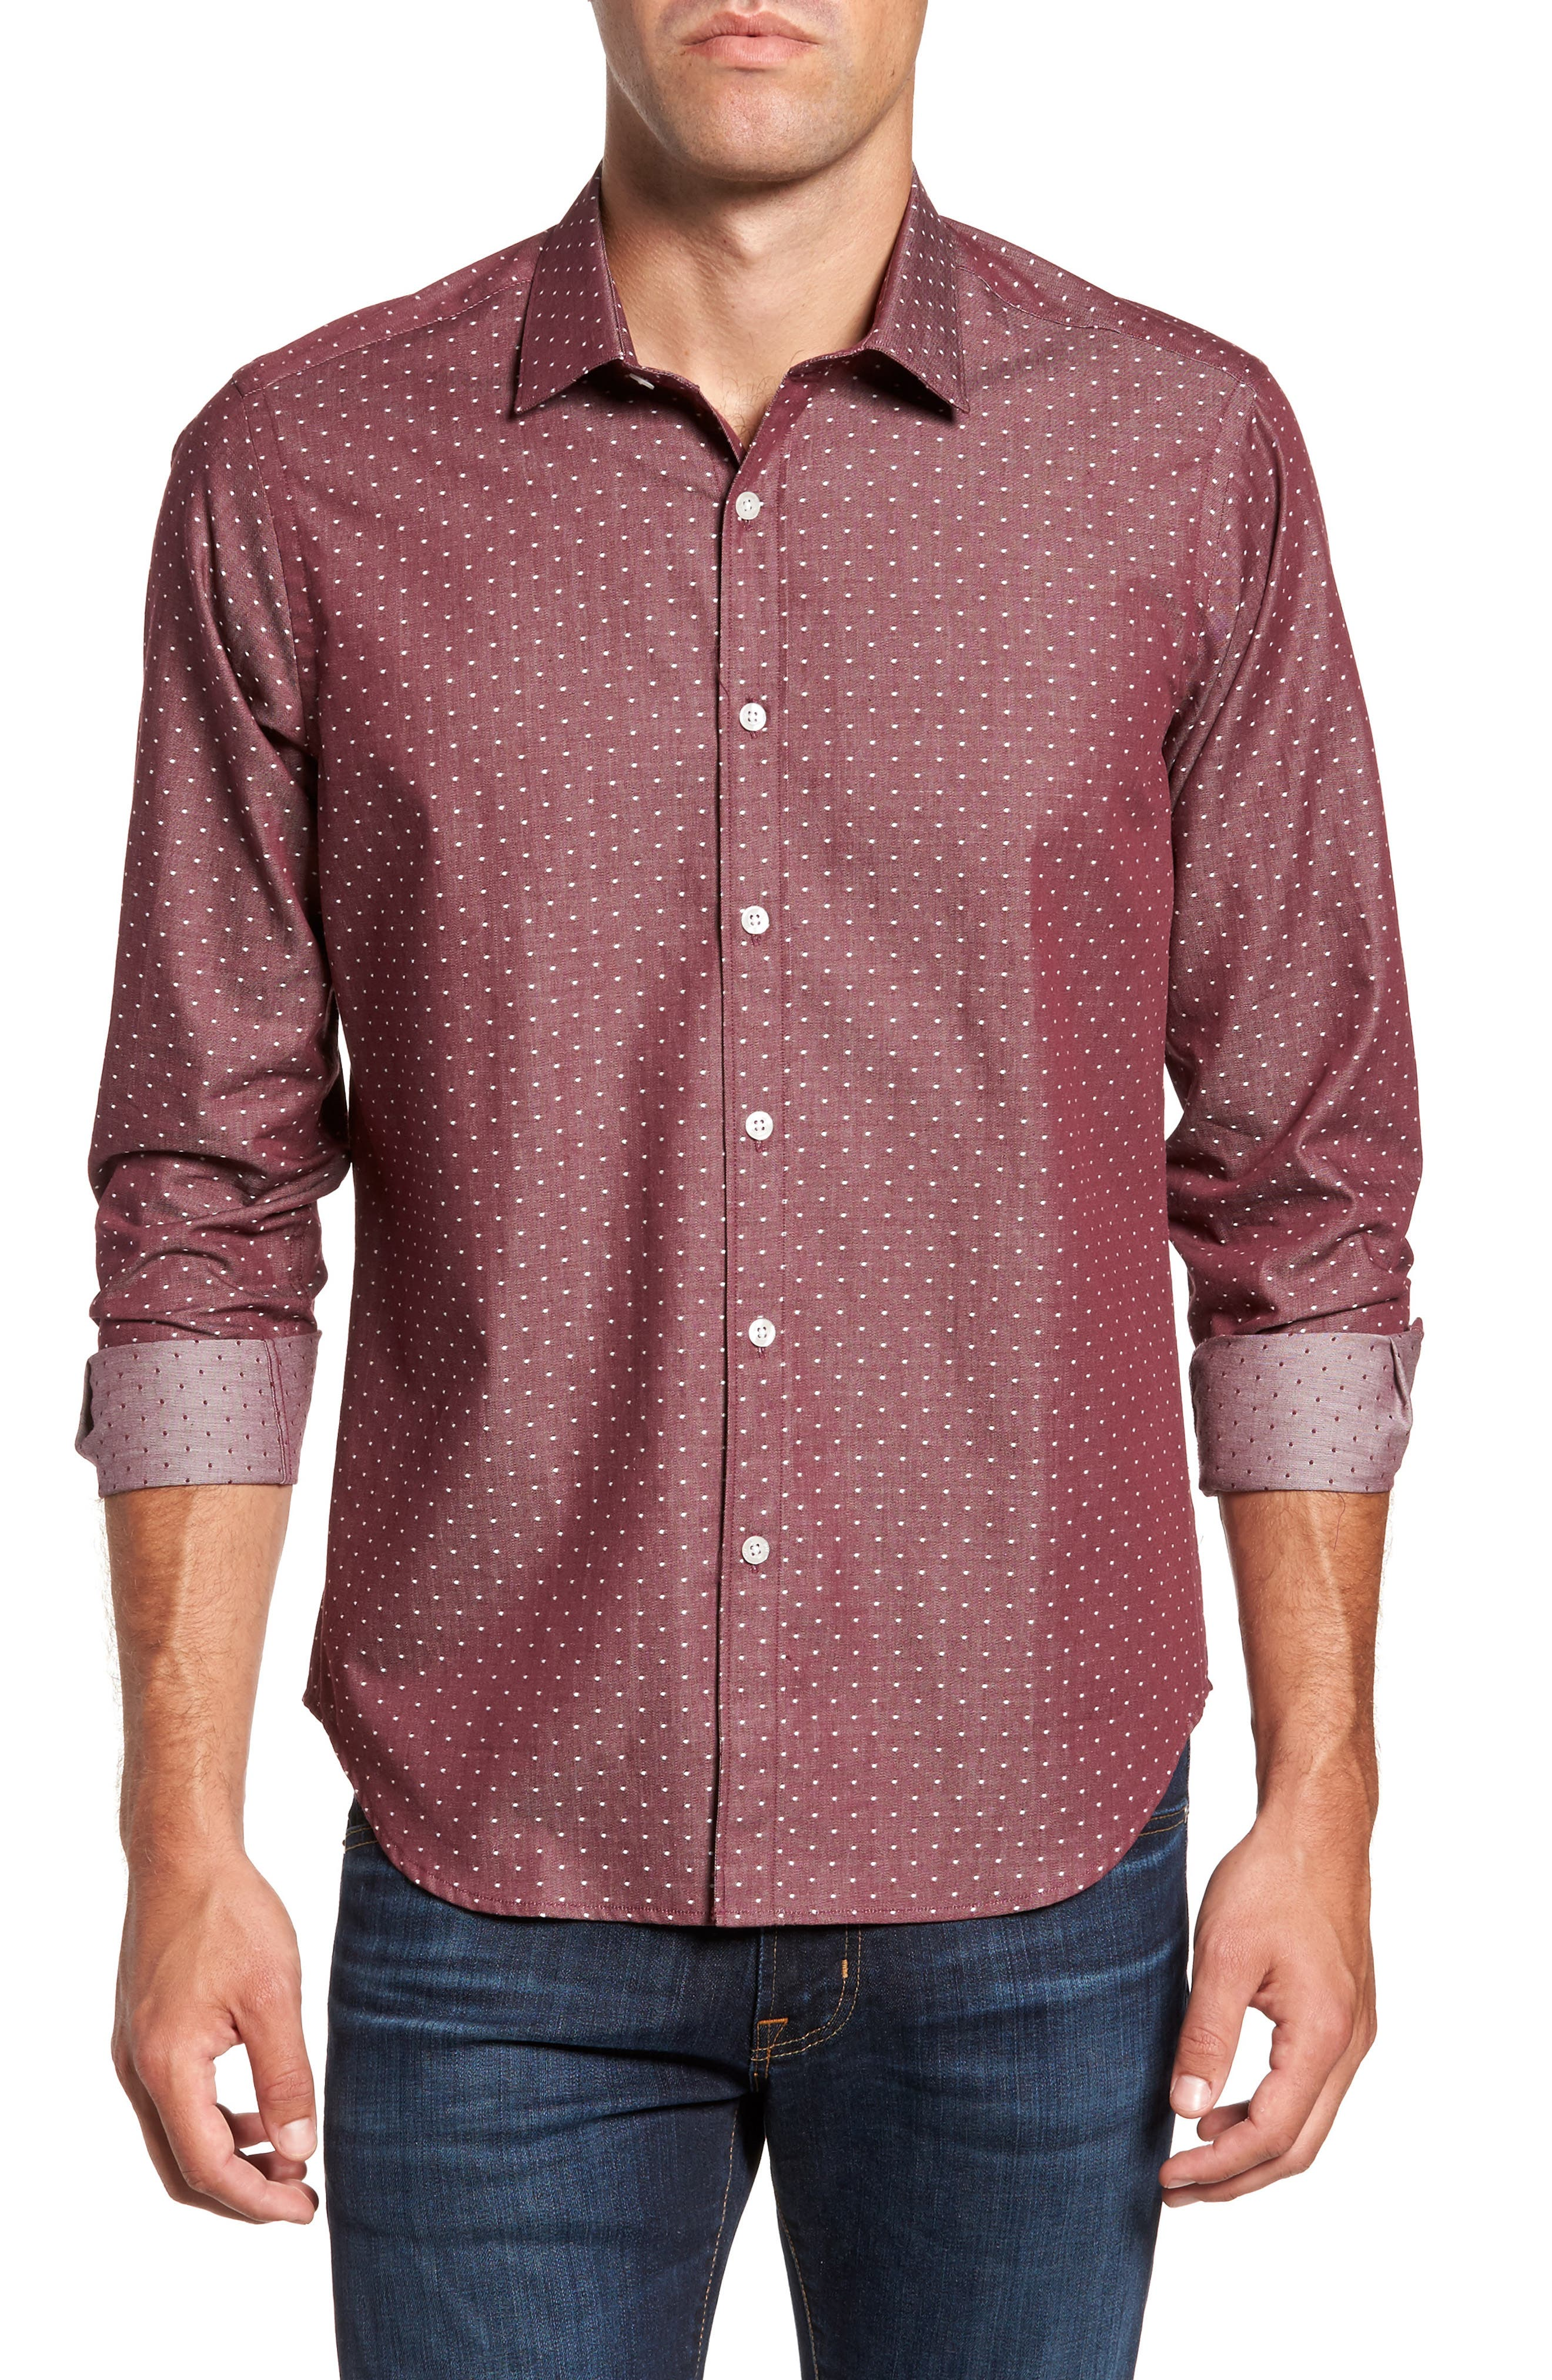 Main Image - Jeff Slim Fit Dot Print Sport Shirt